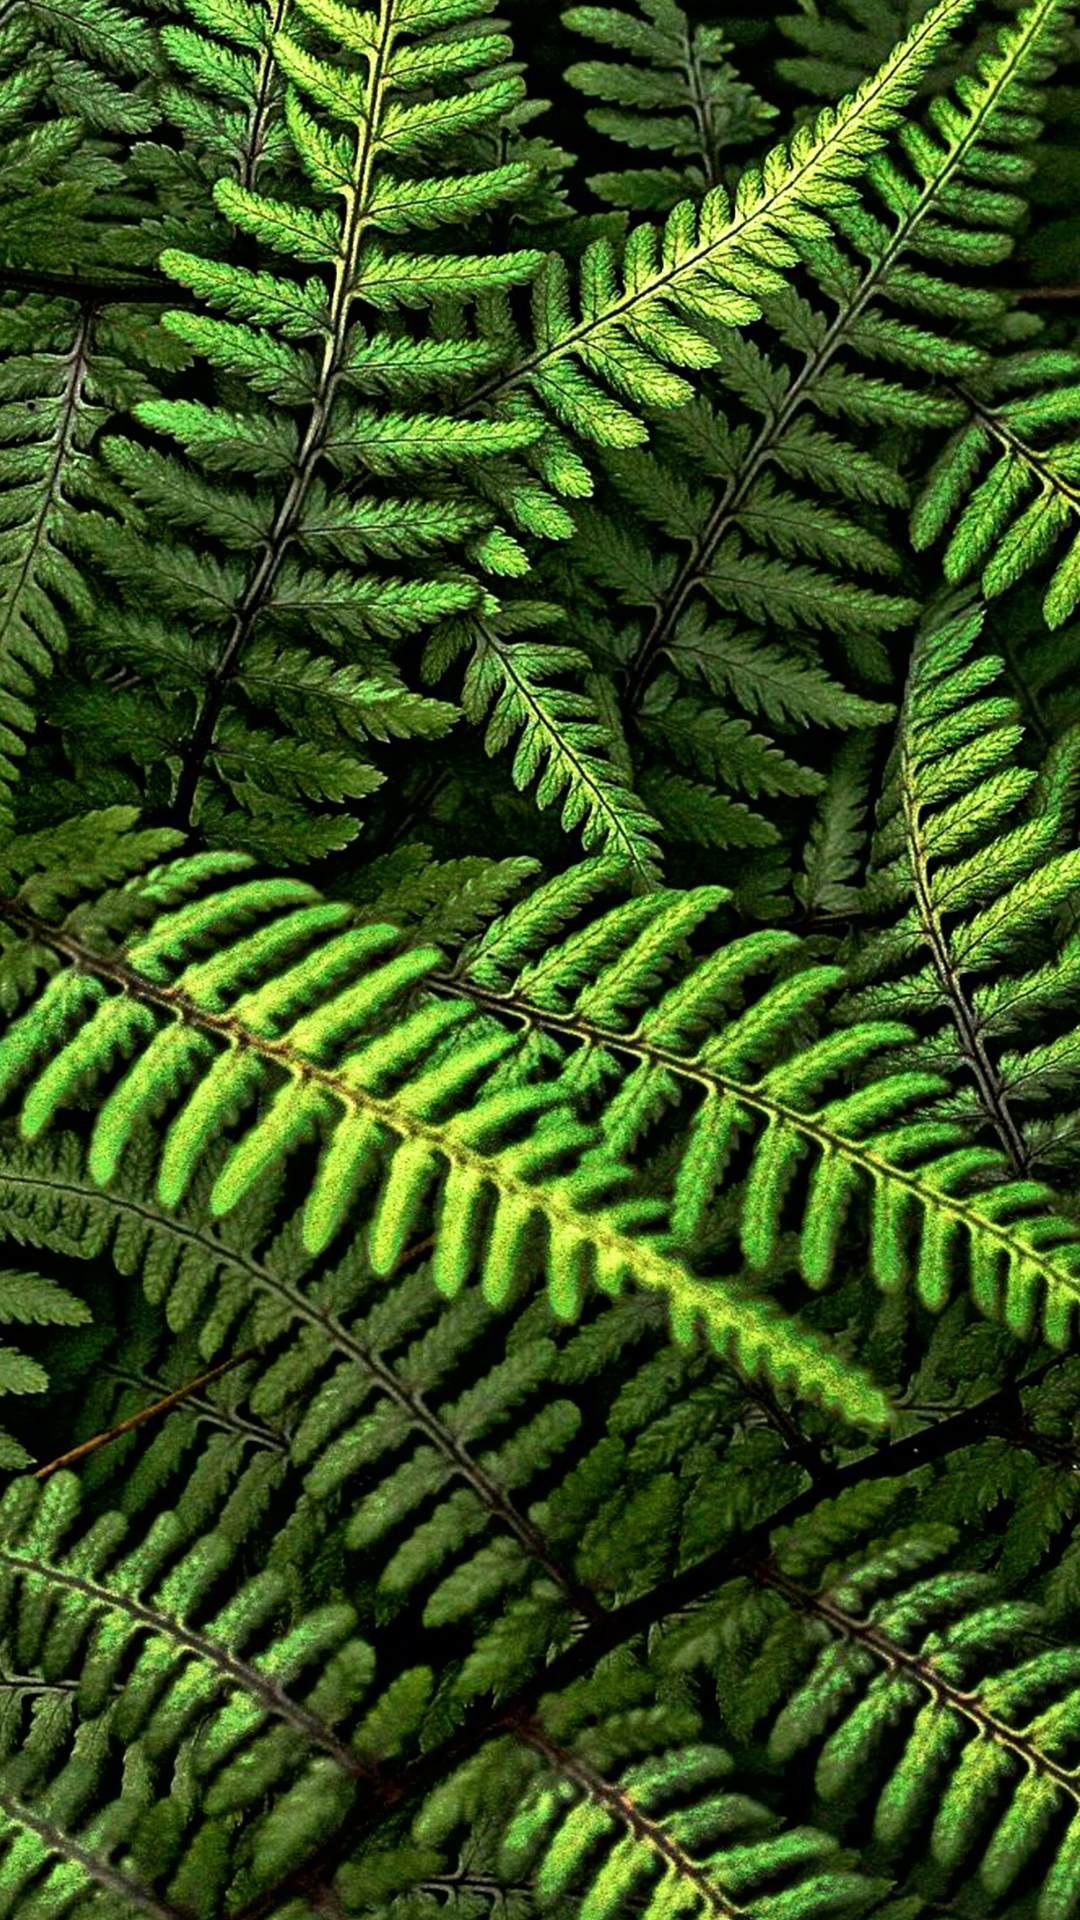 Green Fern Hd Wallpaper For Your Mobile Phone 5695